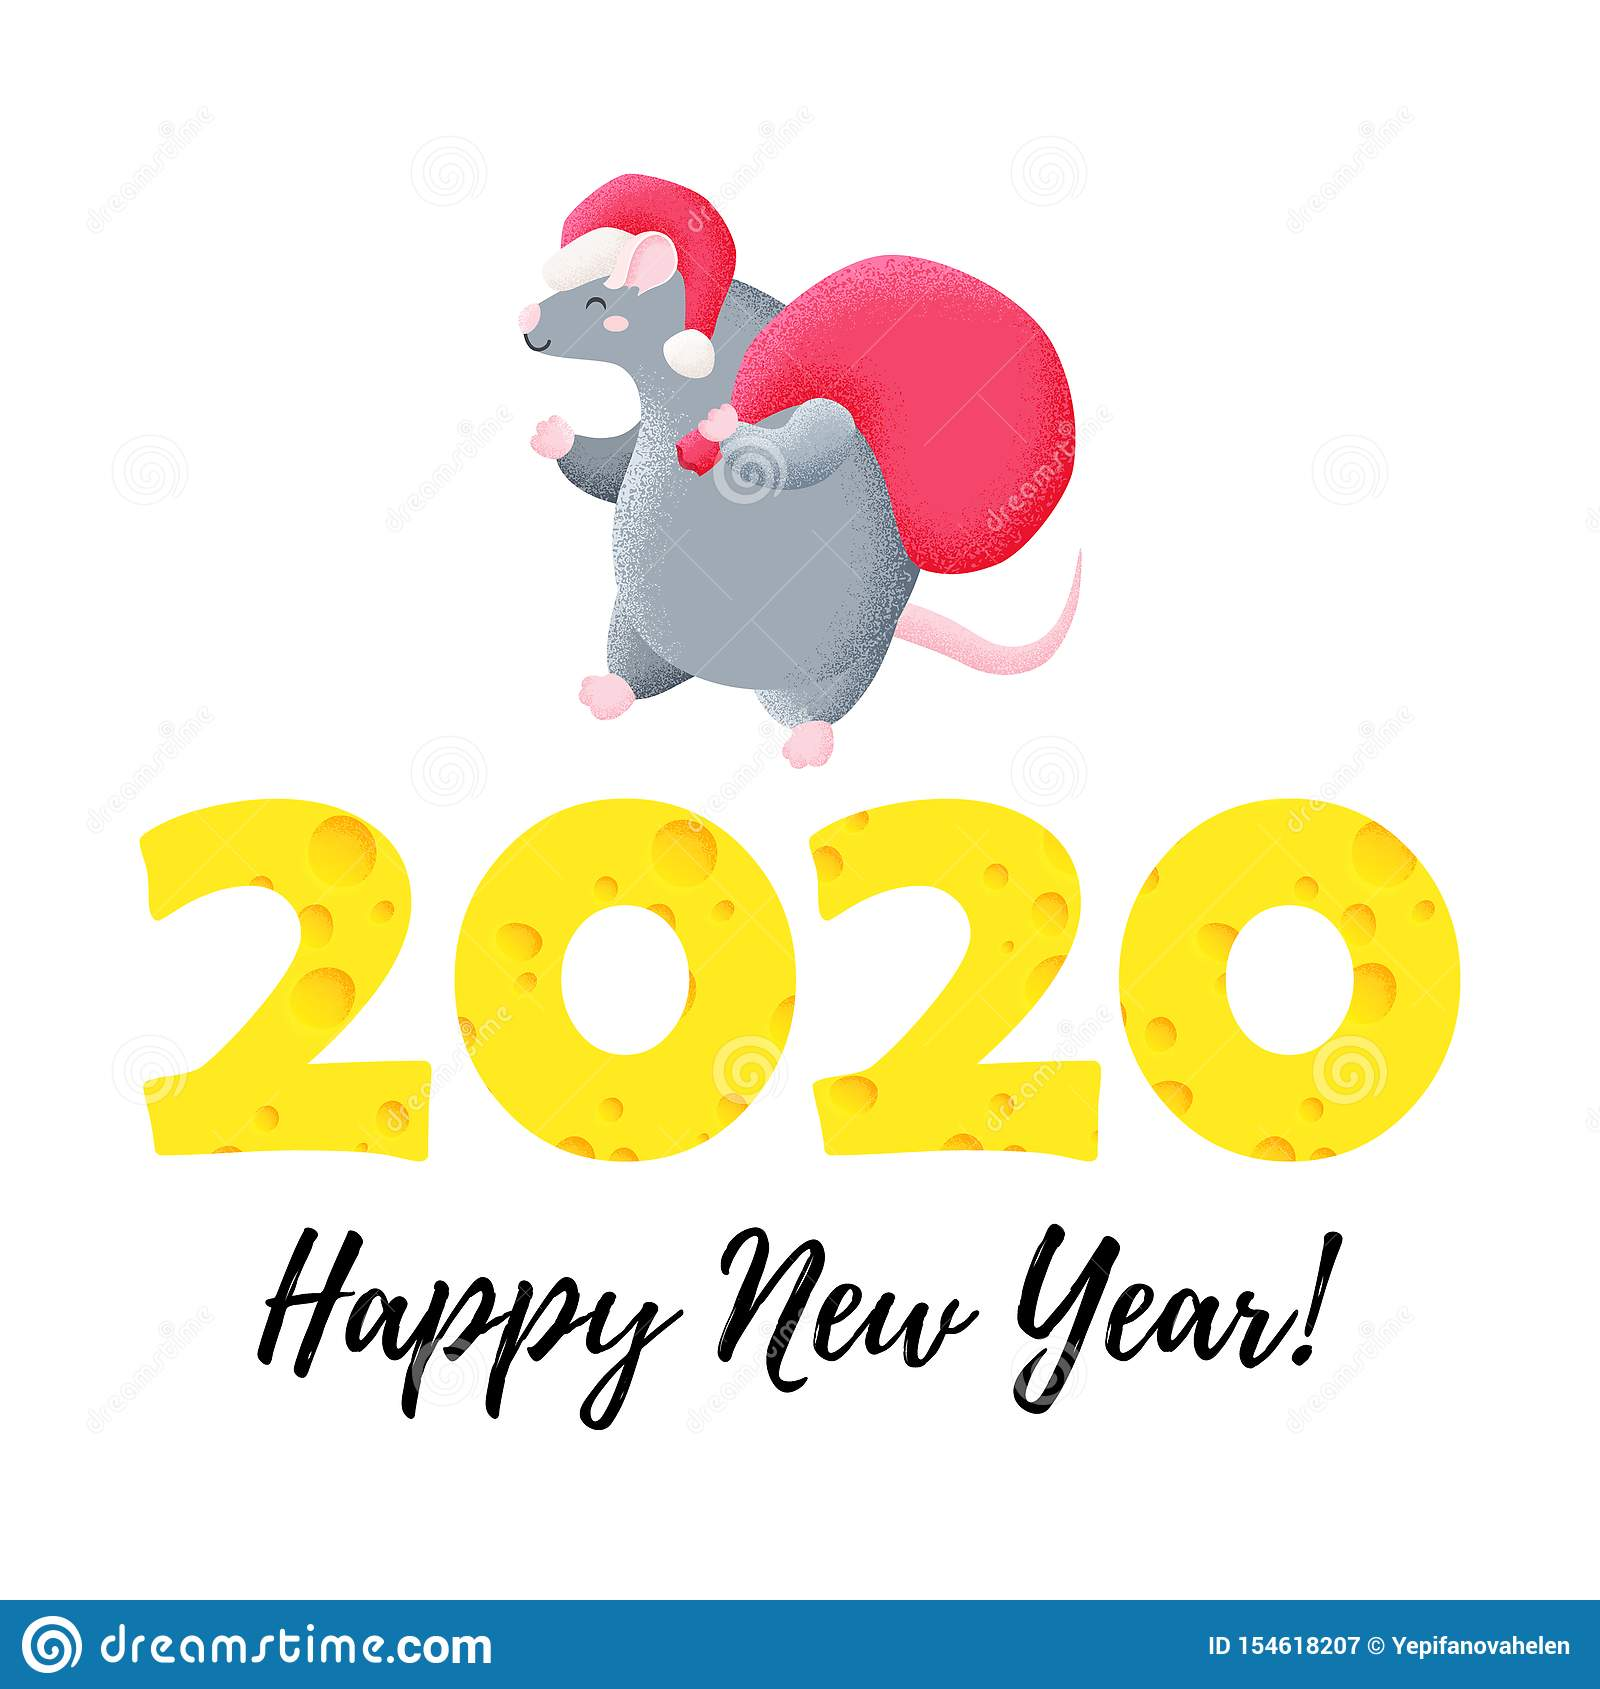 Funny Christmas Card. Chinese New Year. Year Of The Rat